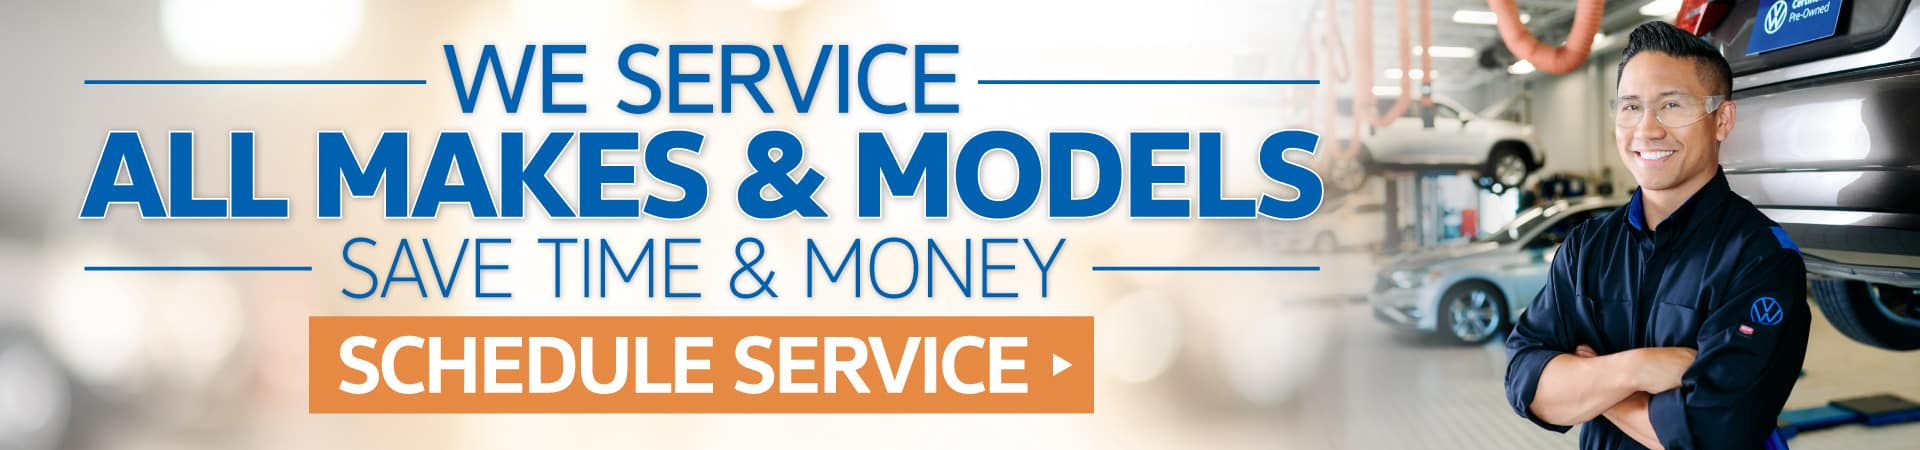 We Service All Makes & Models - Click to Schedule Service